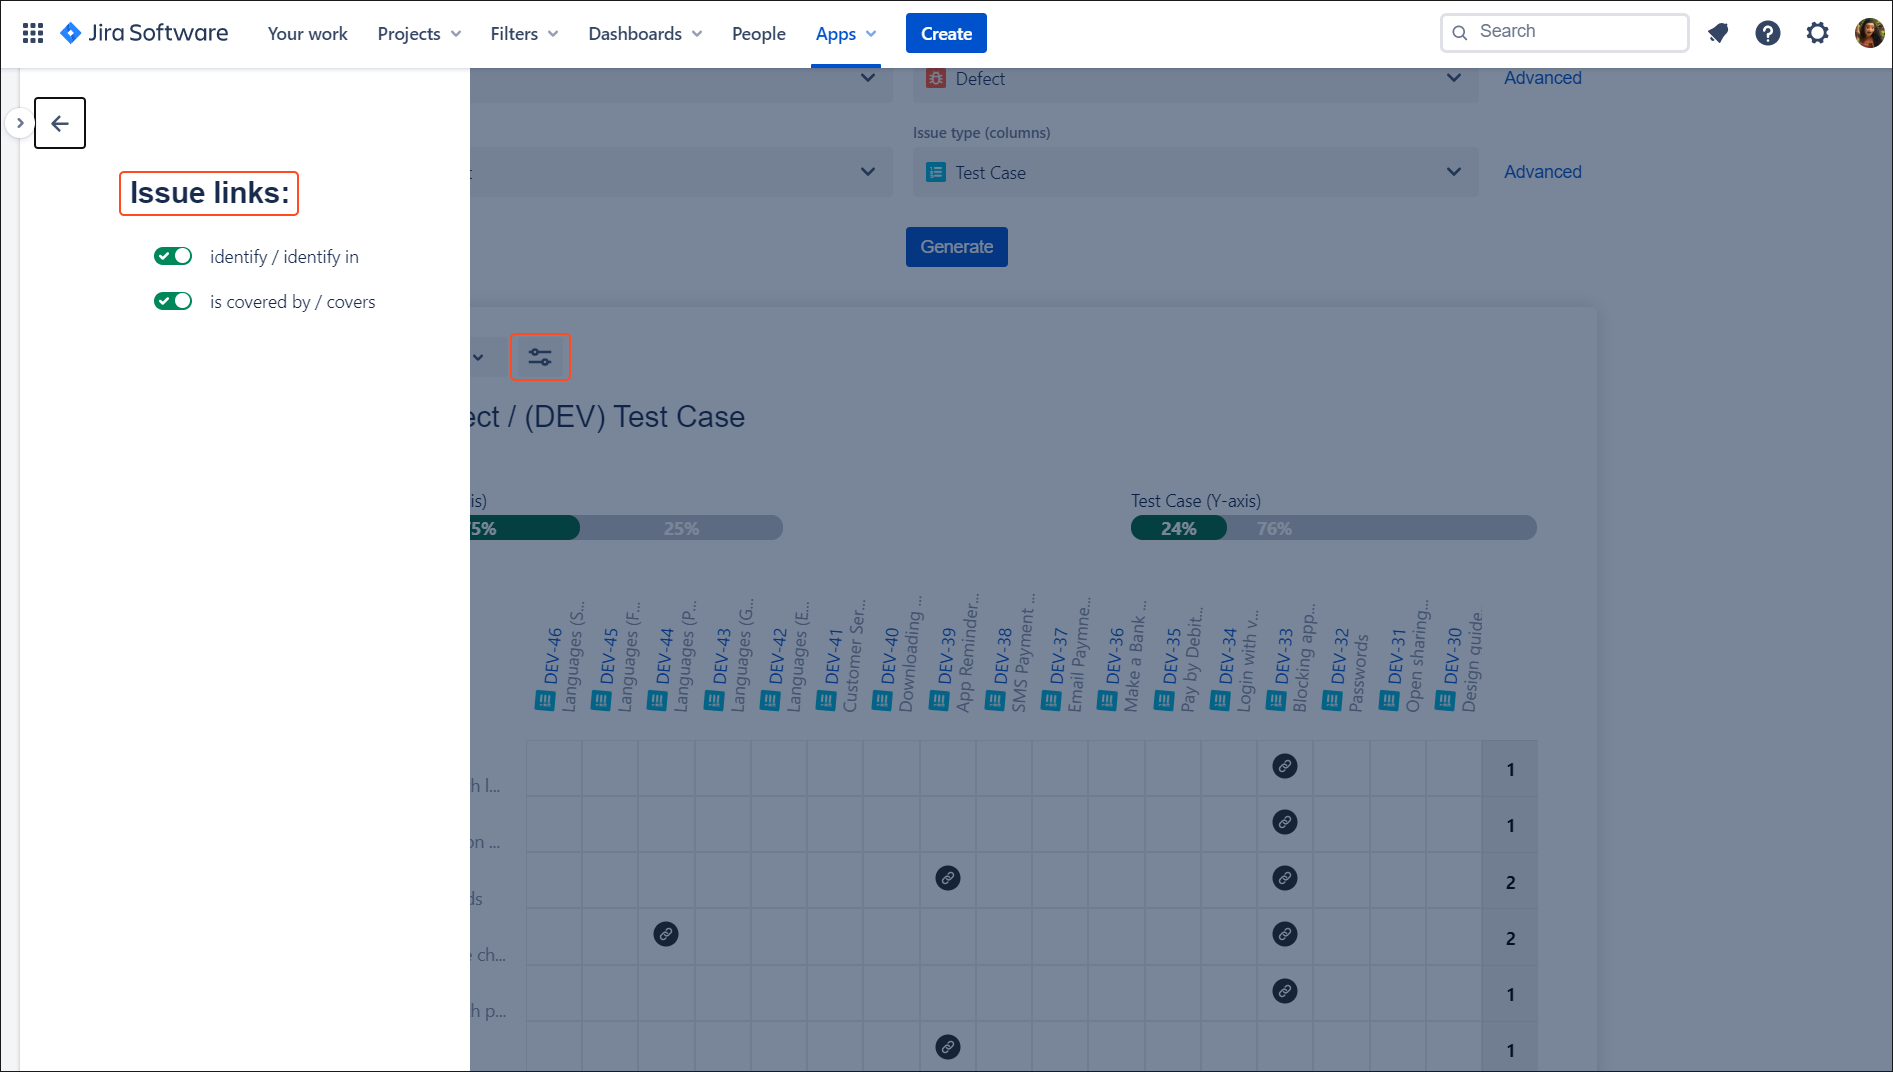 Traceability matrix with Requirements and Test Management for Jira app